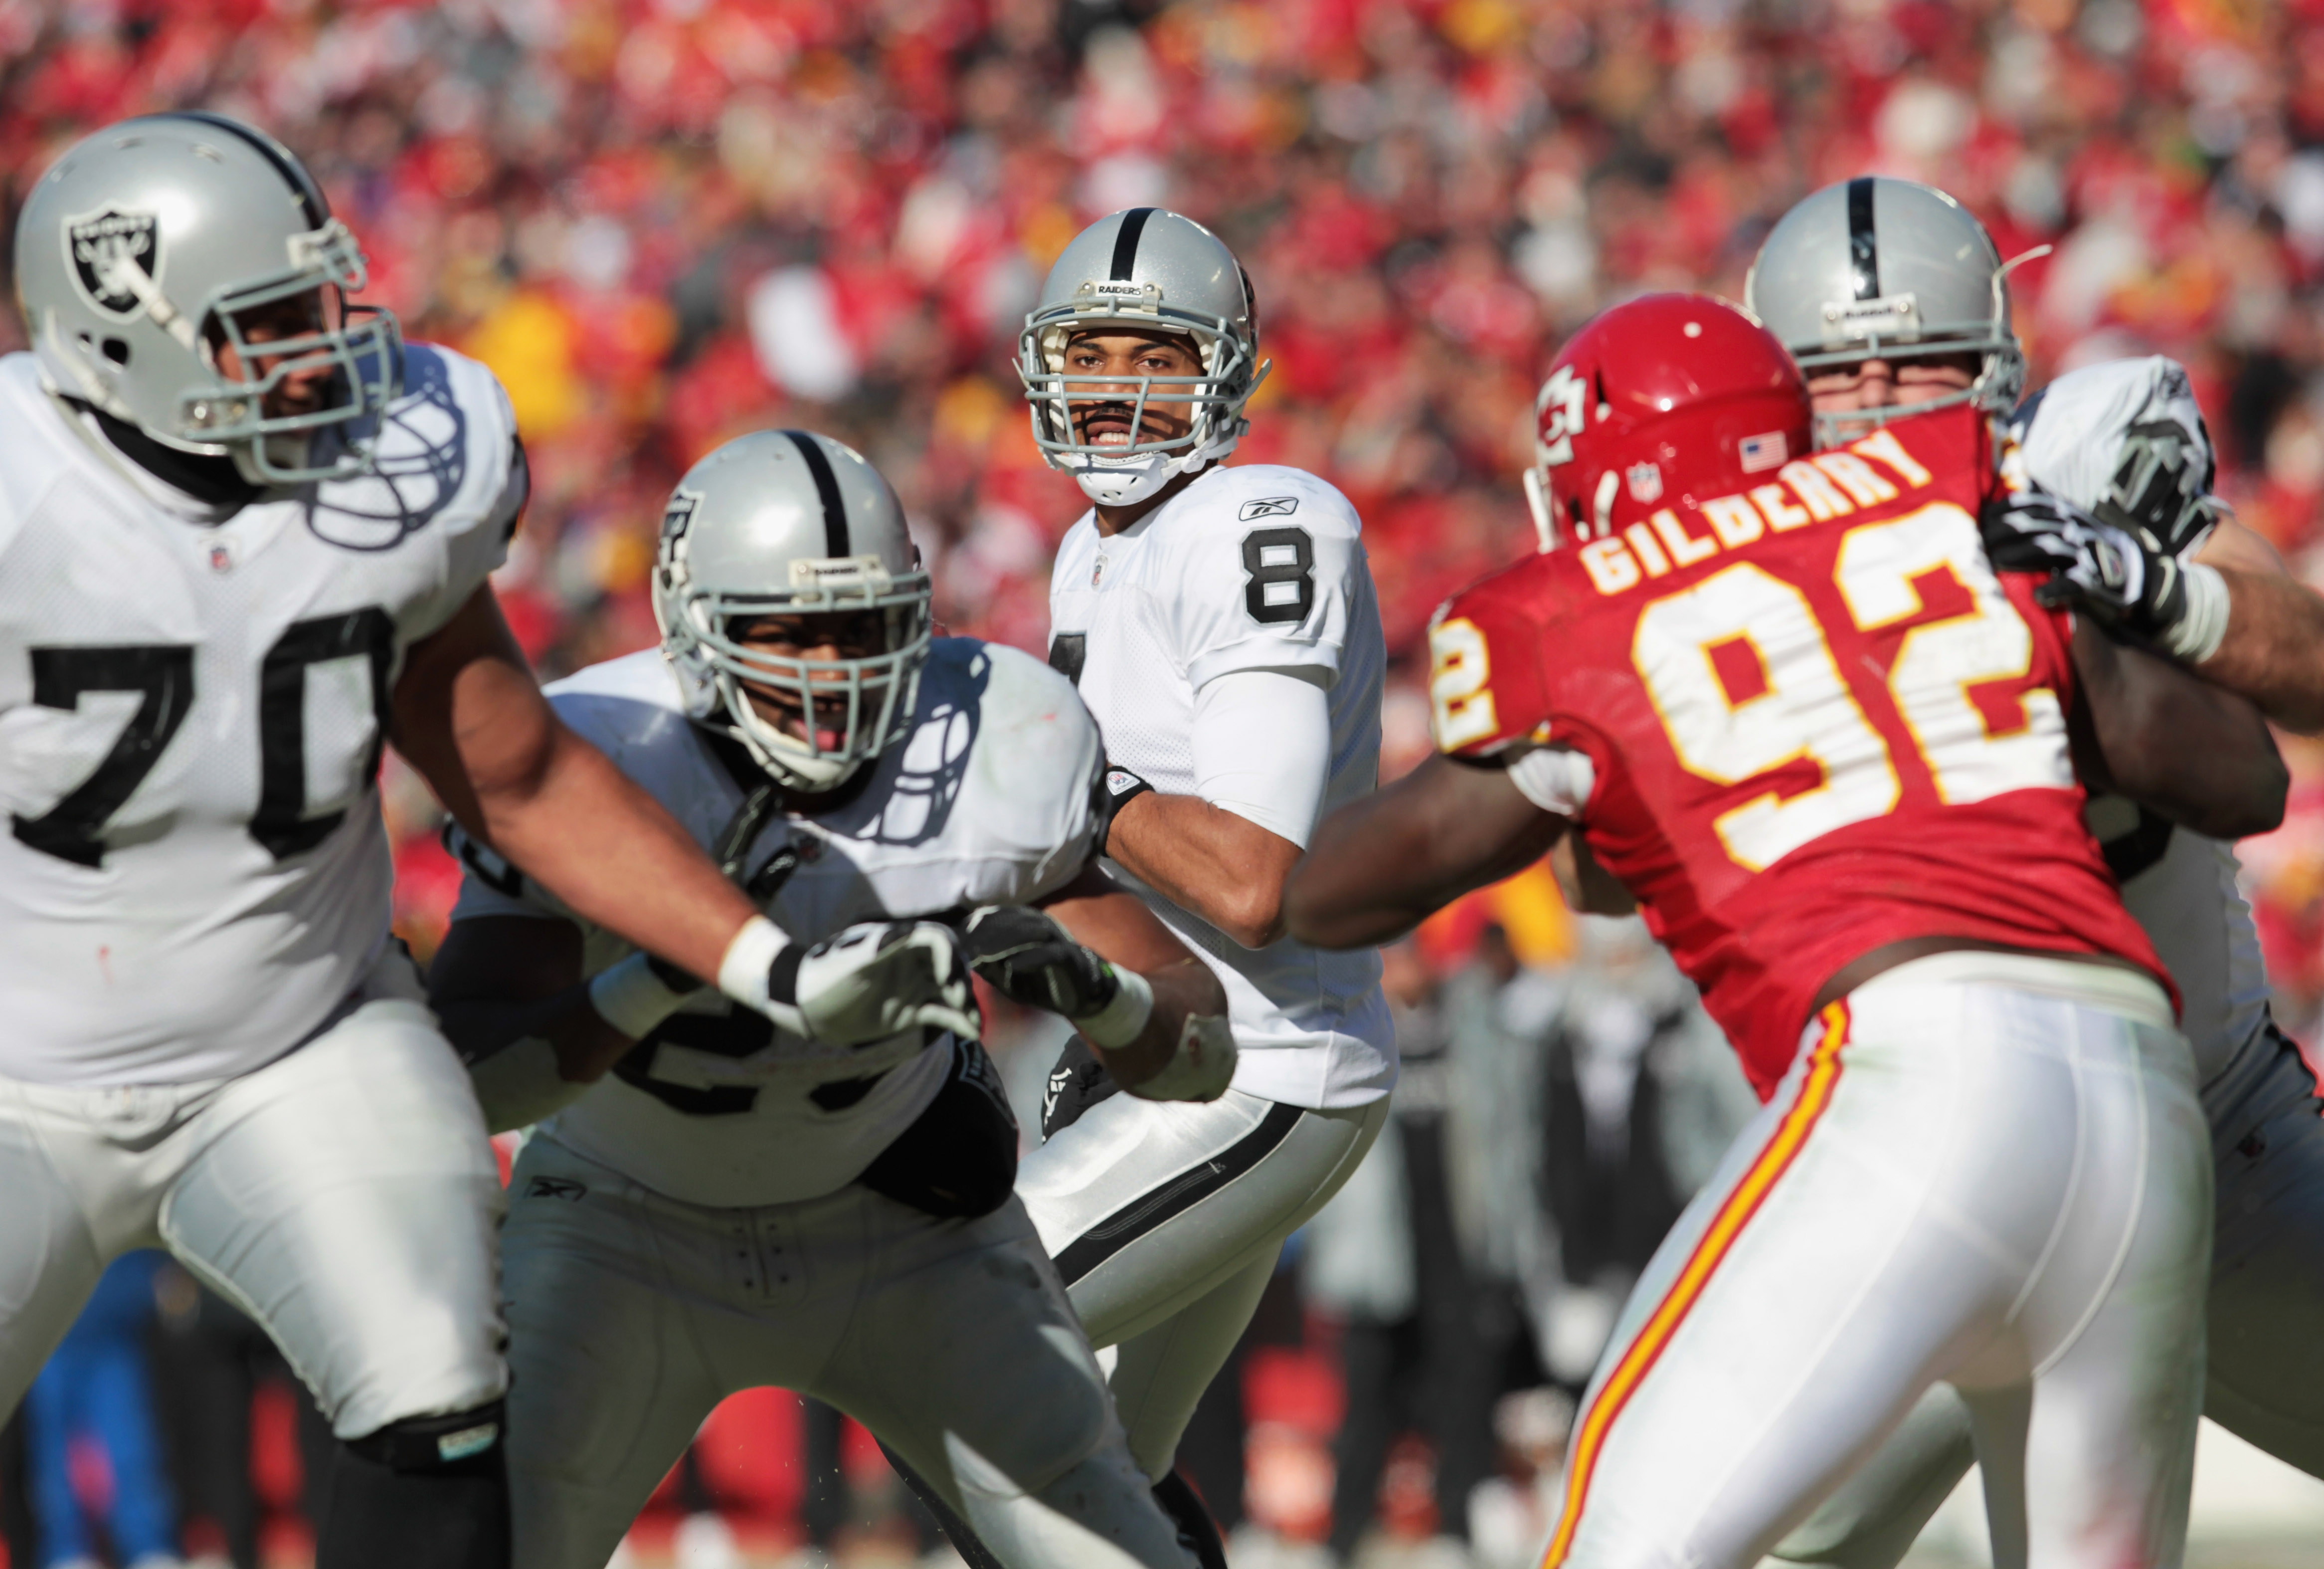 The Raider offensive line played very well...especially in the running game.